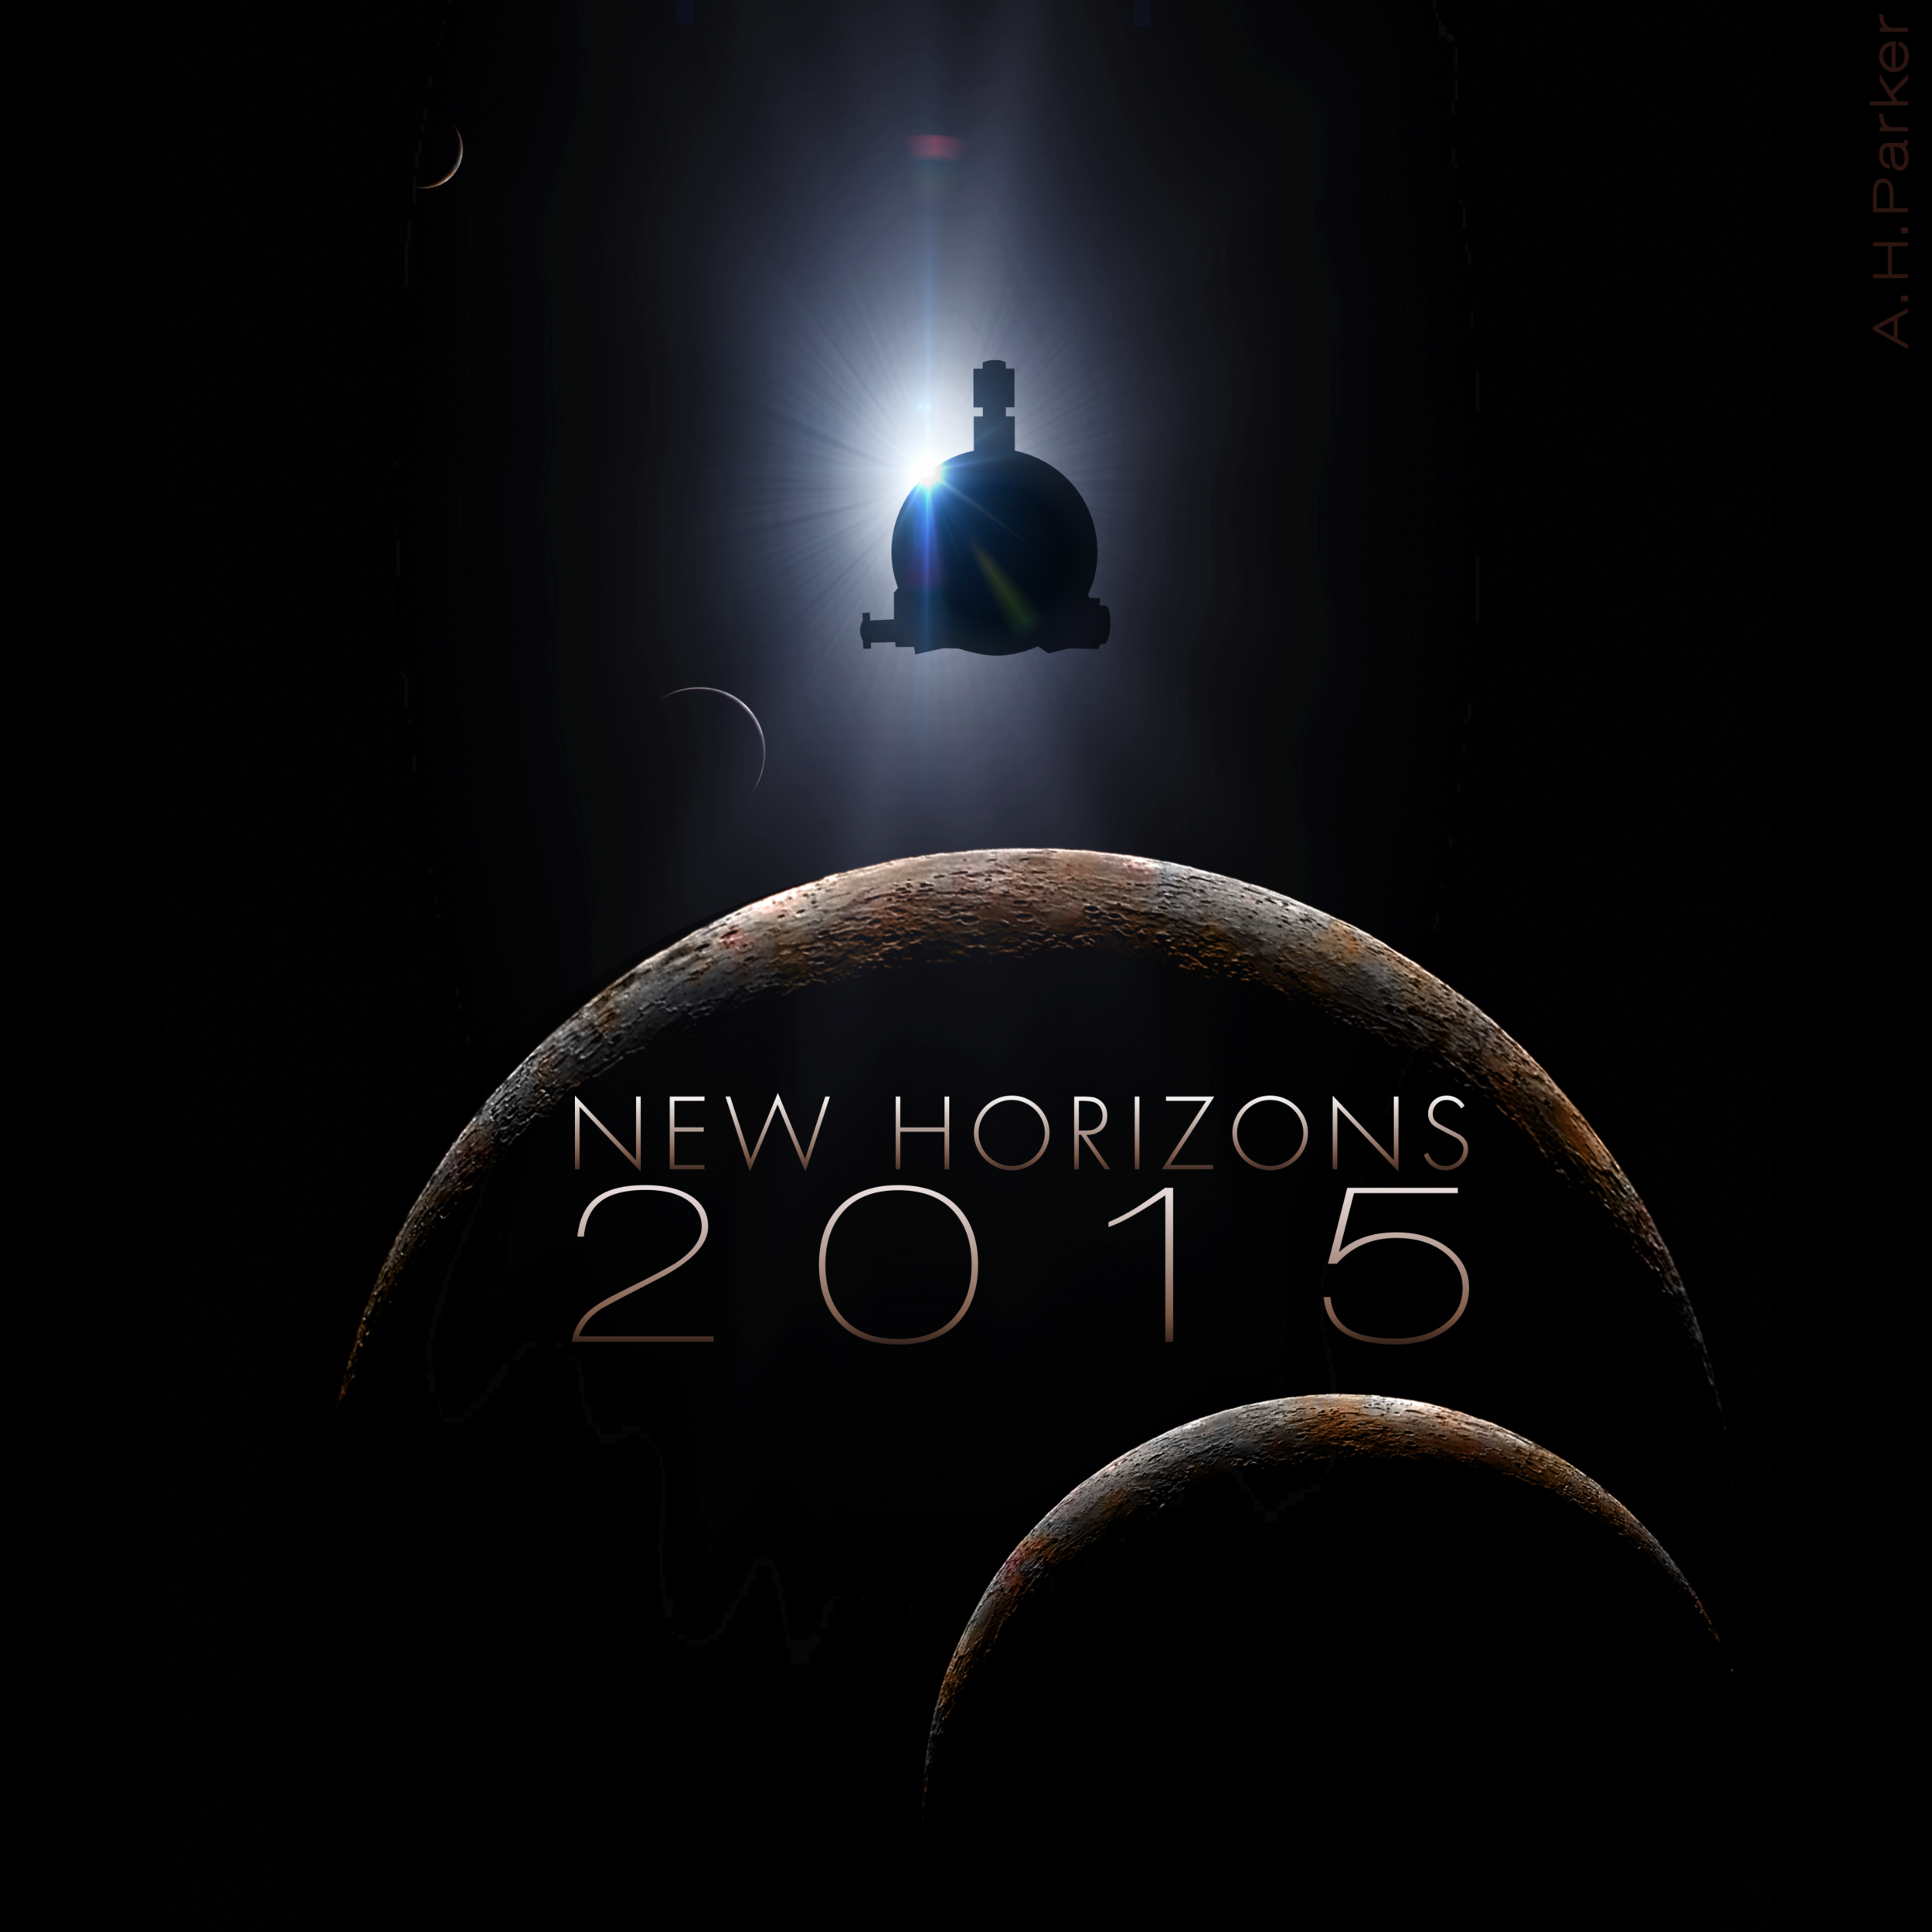 New Horizons in the Pluto system.